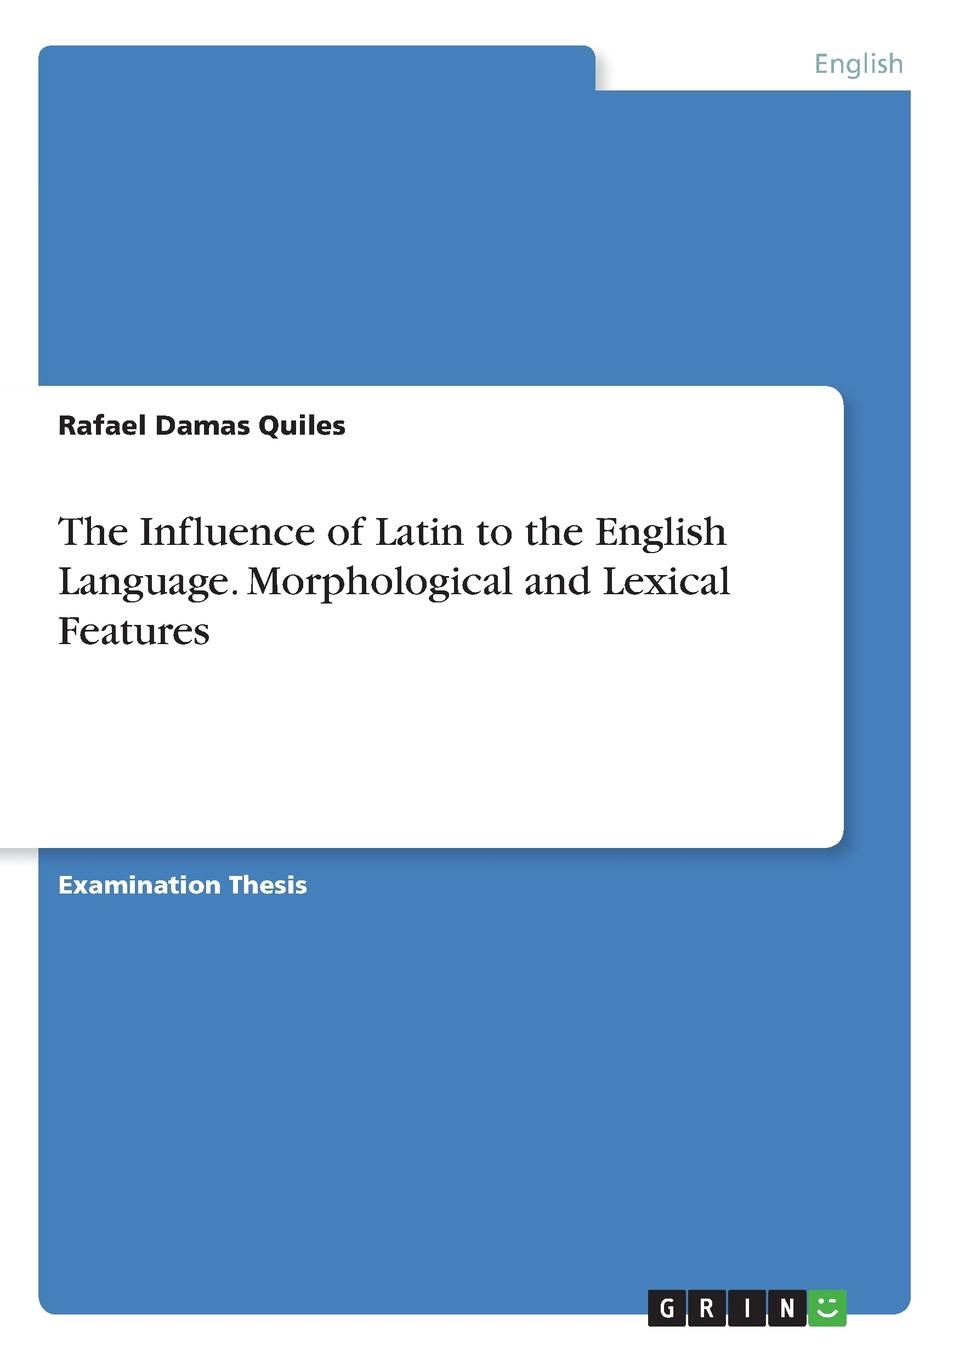 Rafael Damas Quiles The Influence of Latin to the English Language. Morphological and Lexical Features francis valpy etymological dictionary of the latin language